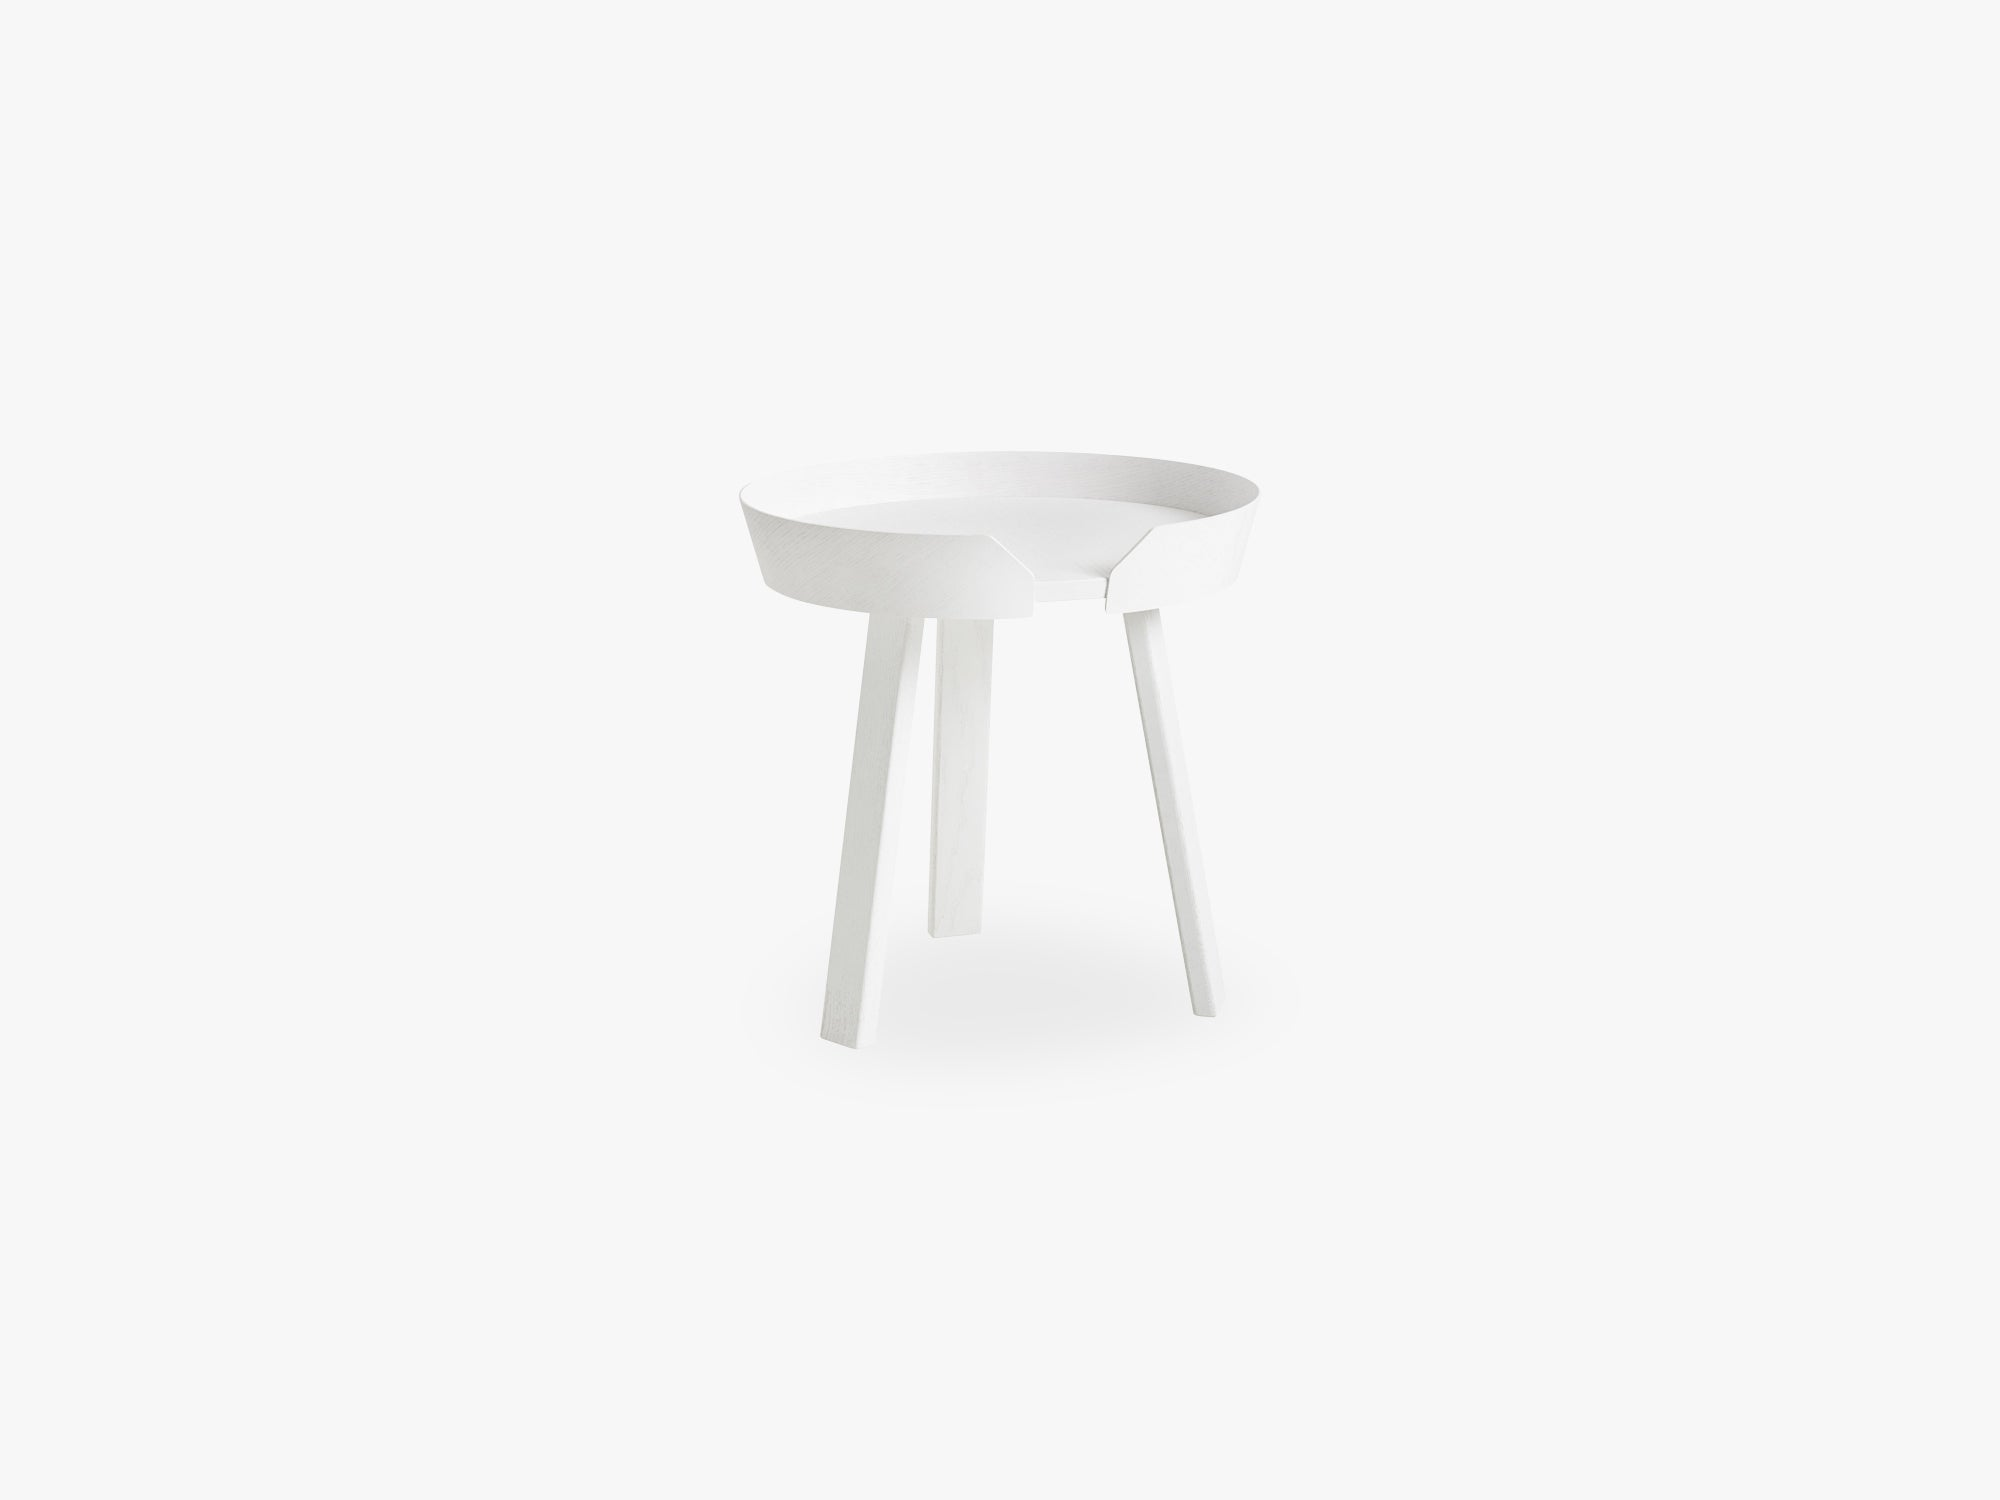 Around Coffee Table - Small, White fra Muuto